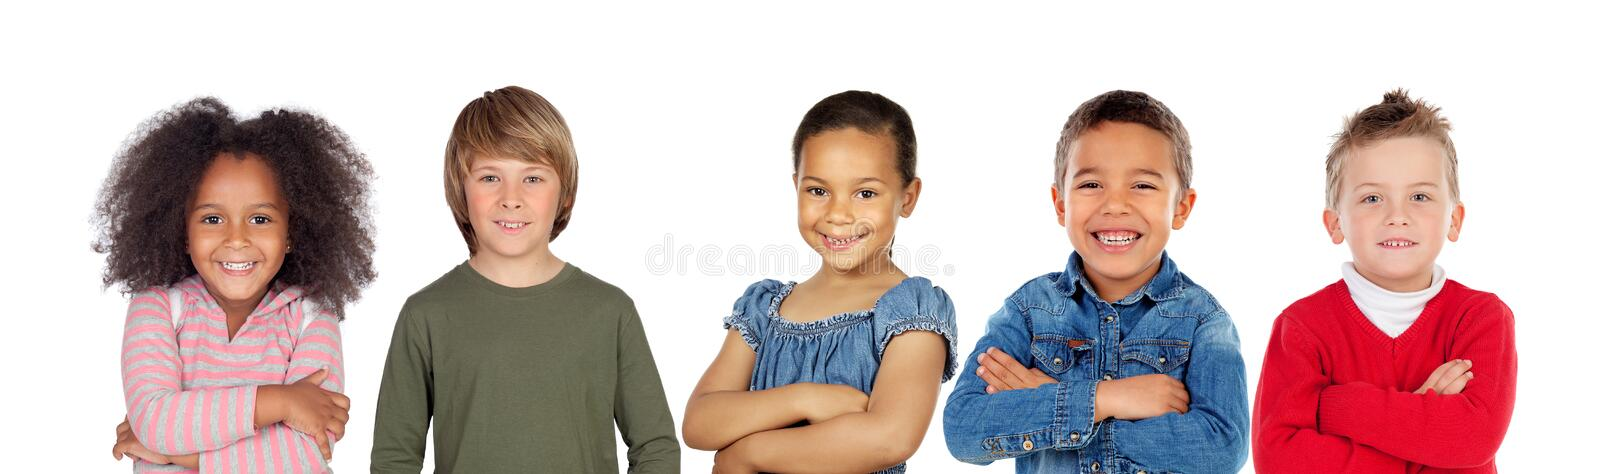 Many children looking at camera stock images